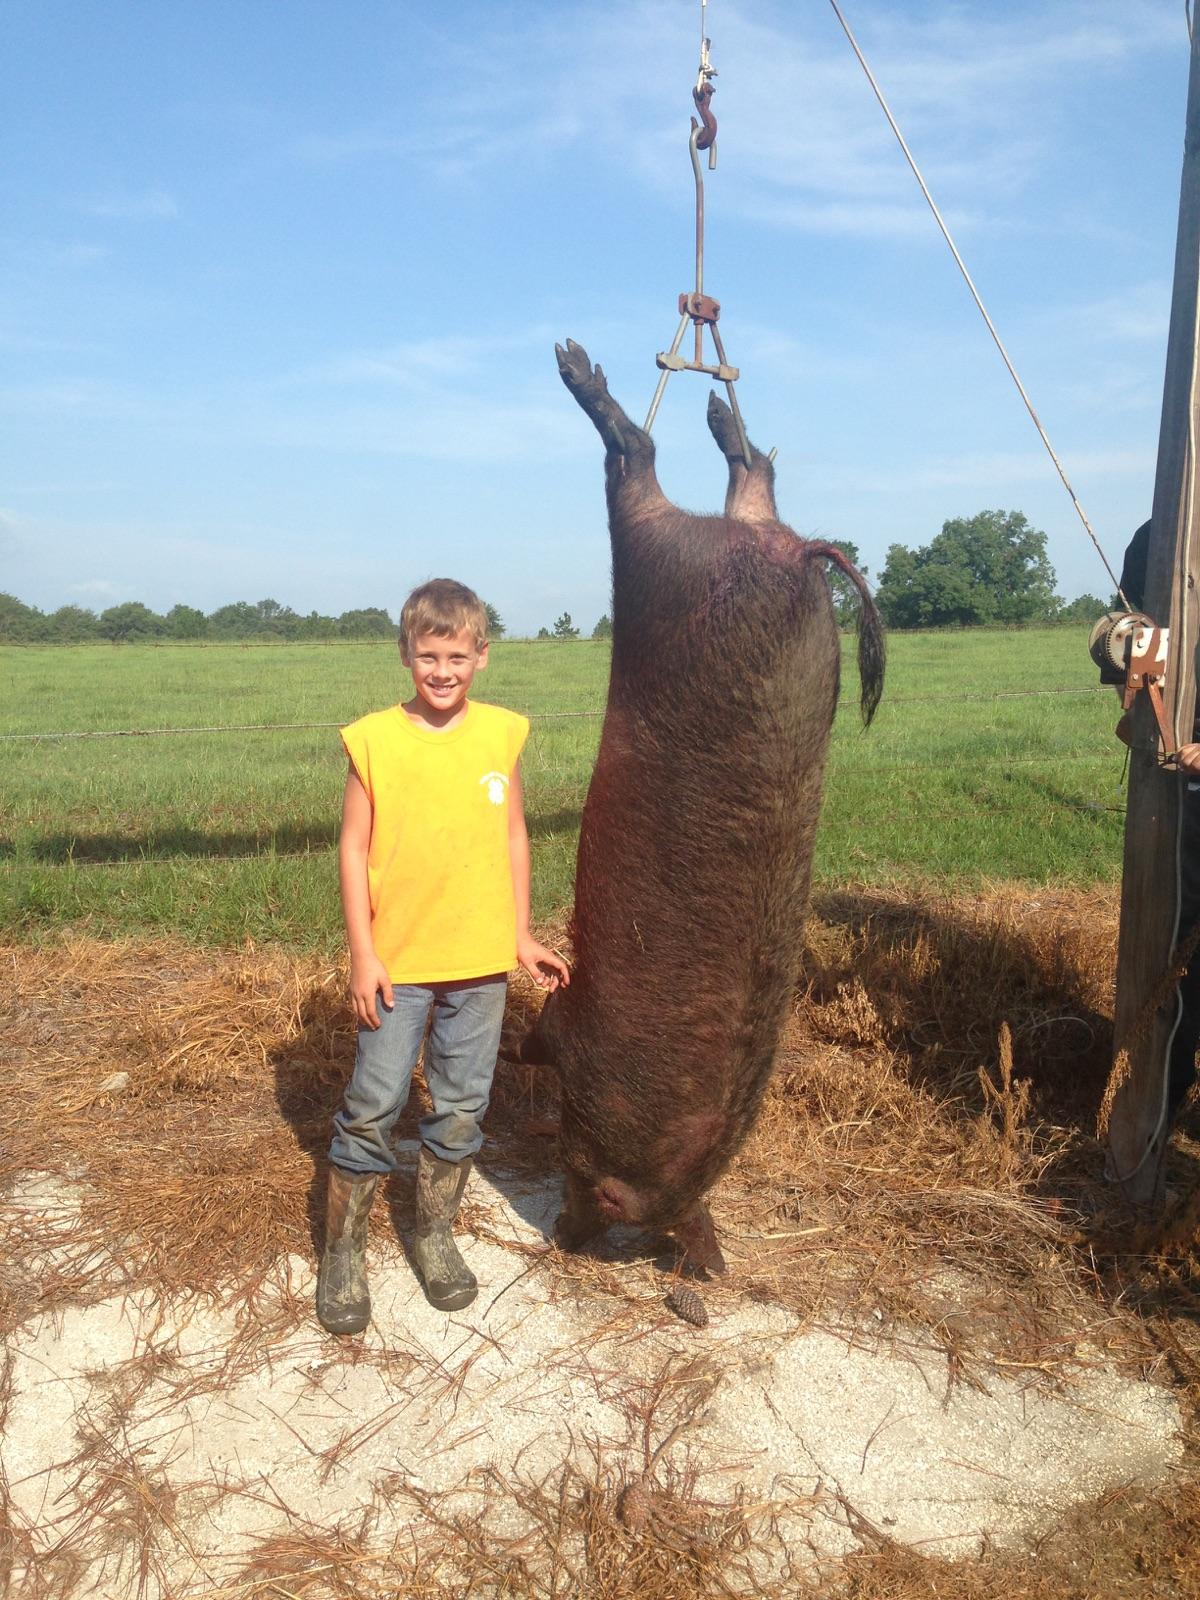 Lane Tres Fiveash with his 400 lbs wild hog that his dog Dan the Man caught